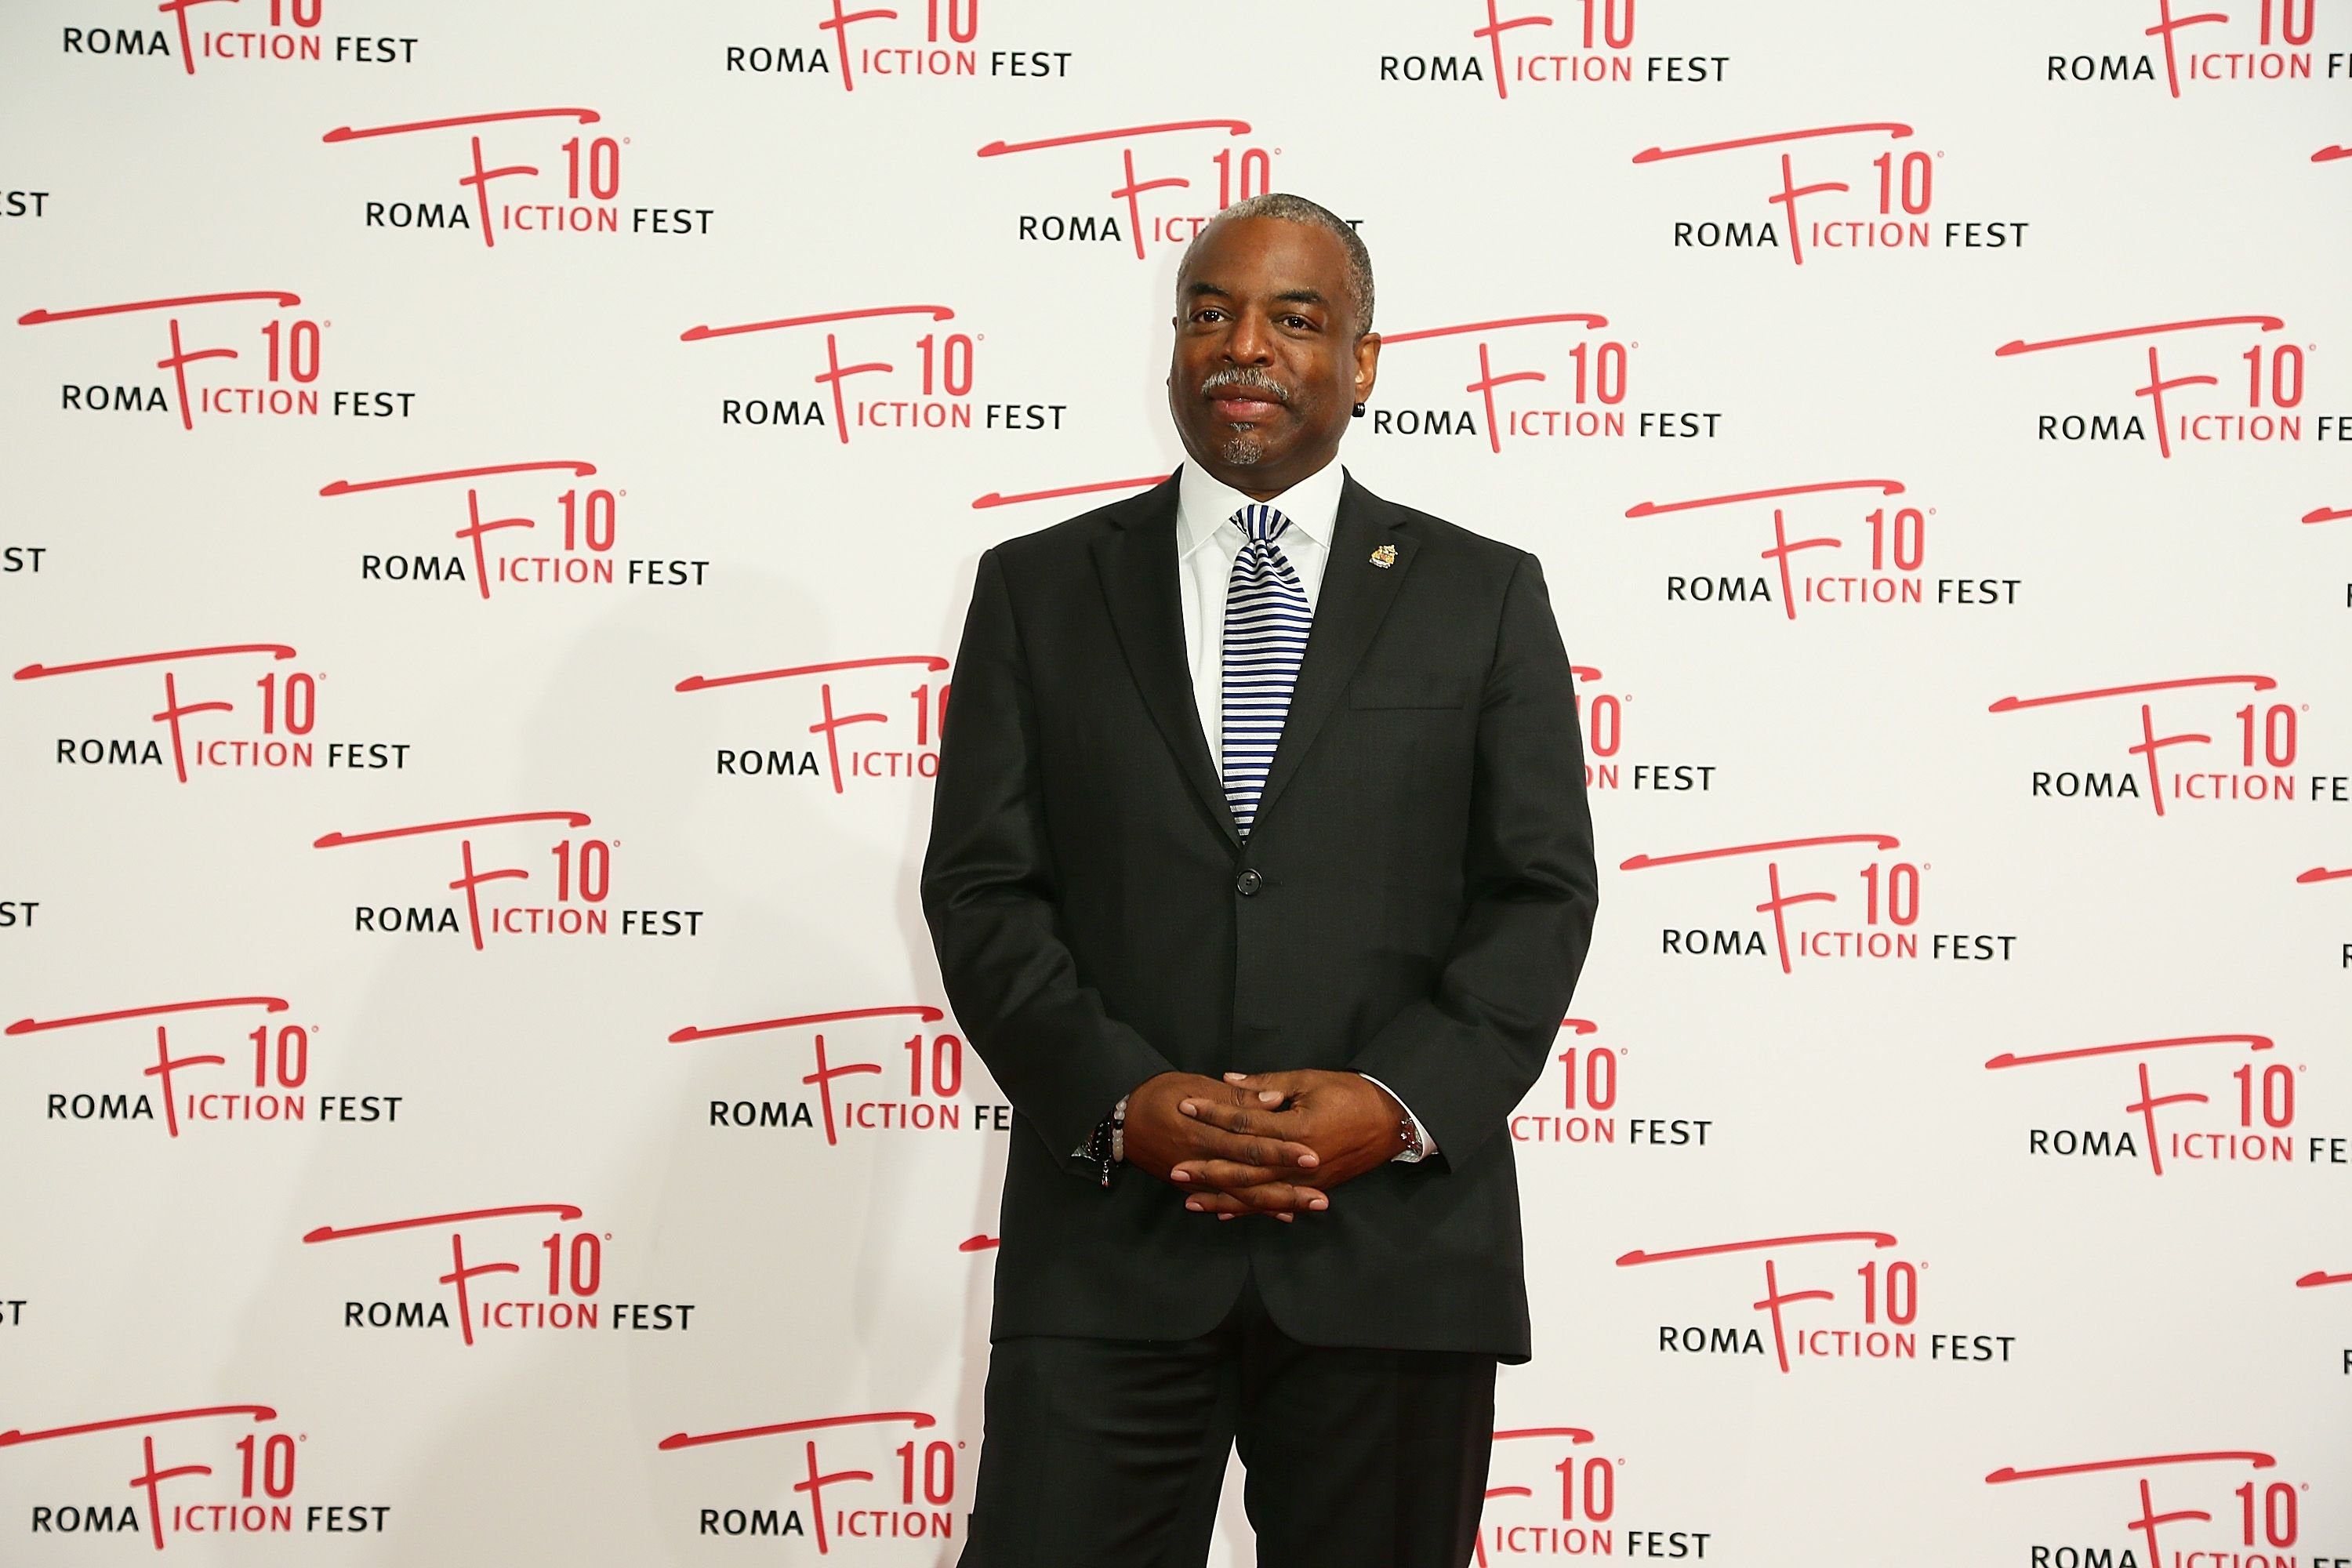 LeVar Burton attends the 'Roots' red carpet during the Roma Fiction Fest 2016  | Source: Getty Images